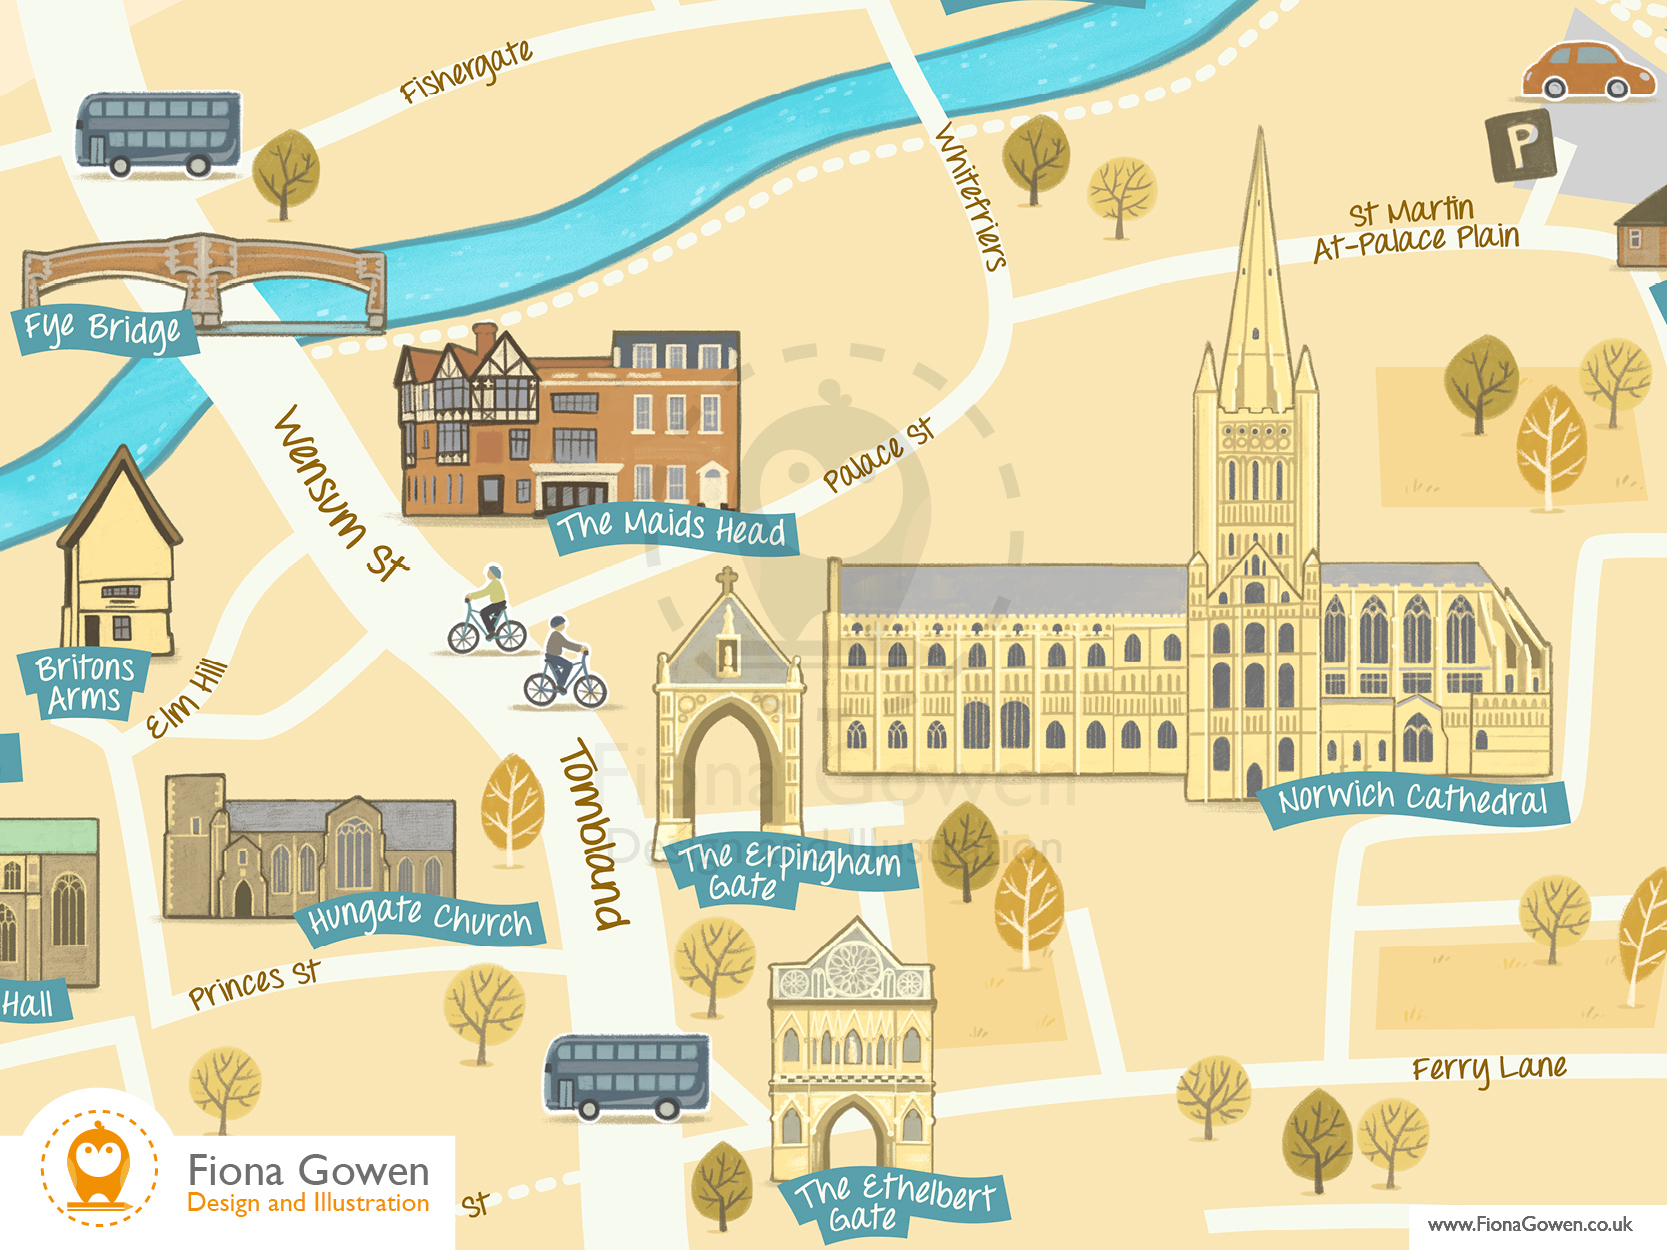 Crop of Norwich Cathedral Quarter Illustrated map. Showing key buildings such as the Maids Head Hotel, Norwich Cathedral, The Britons Arms and Fye Bridge